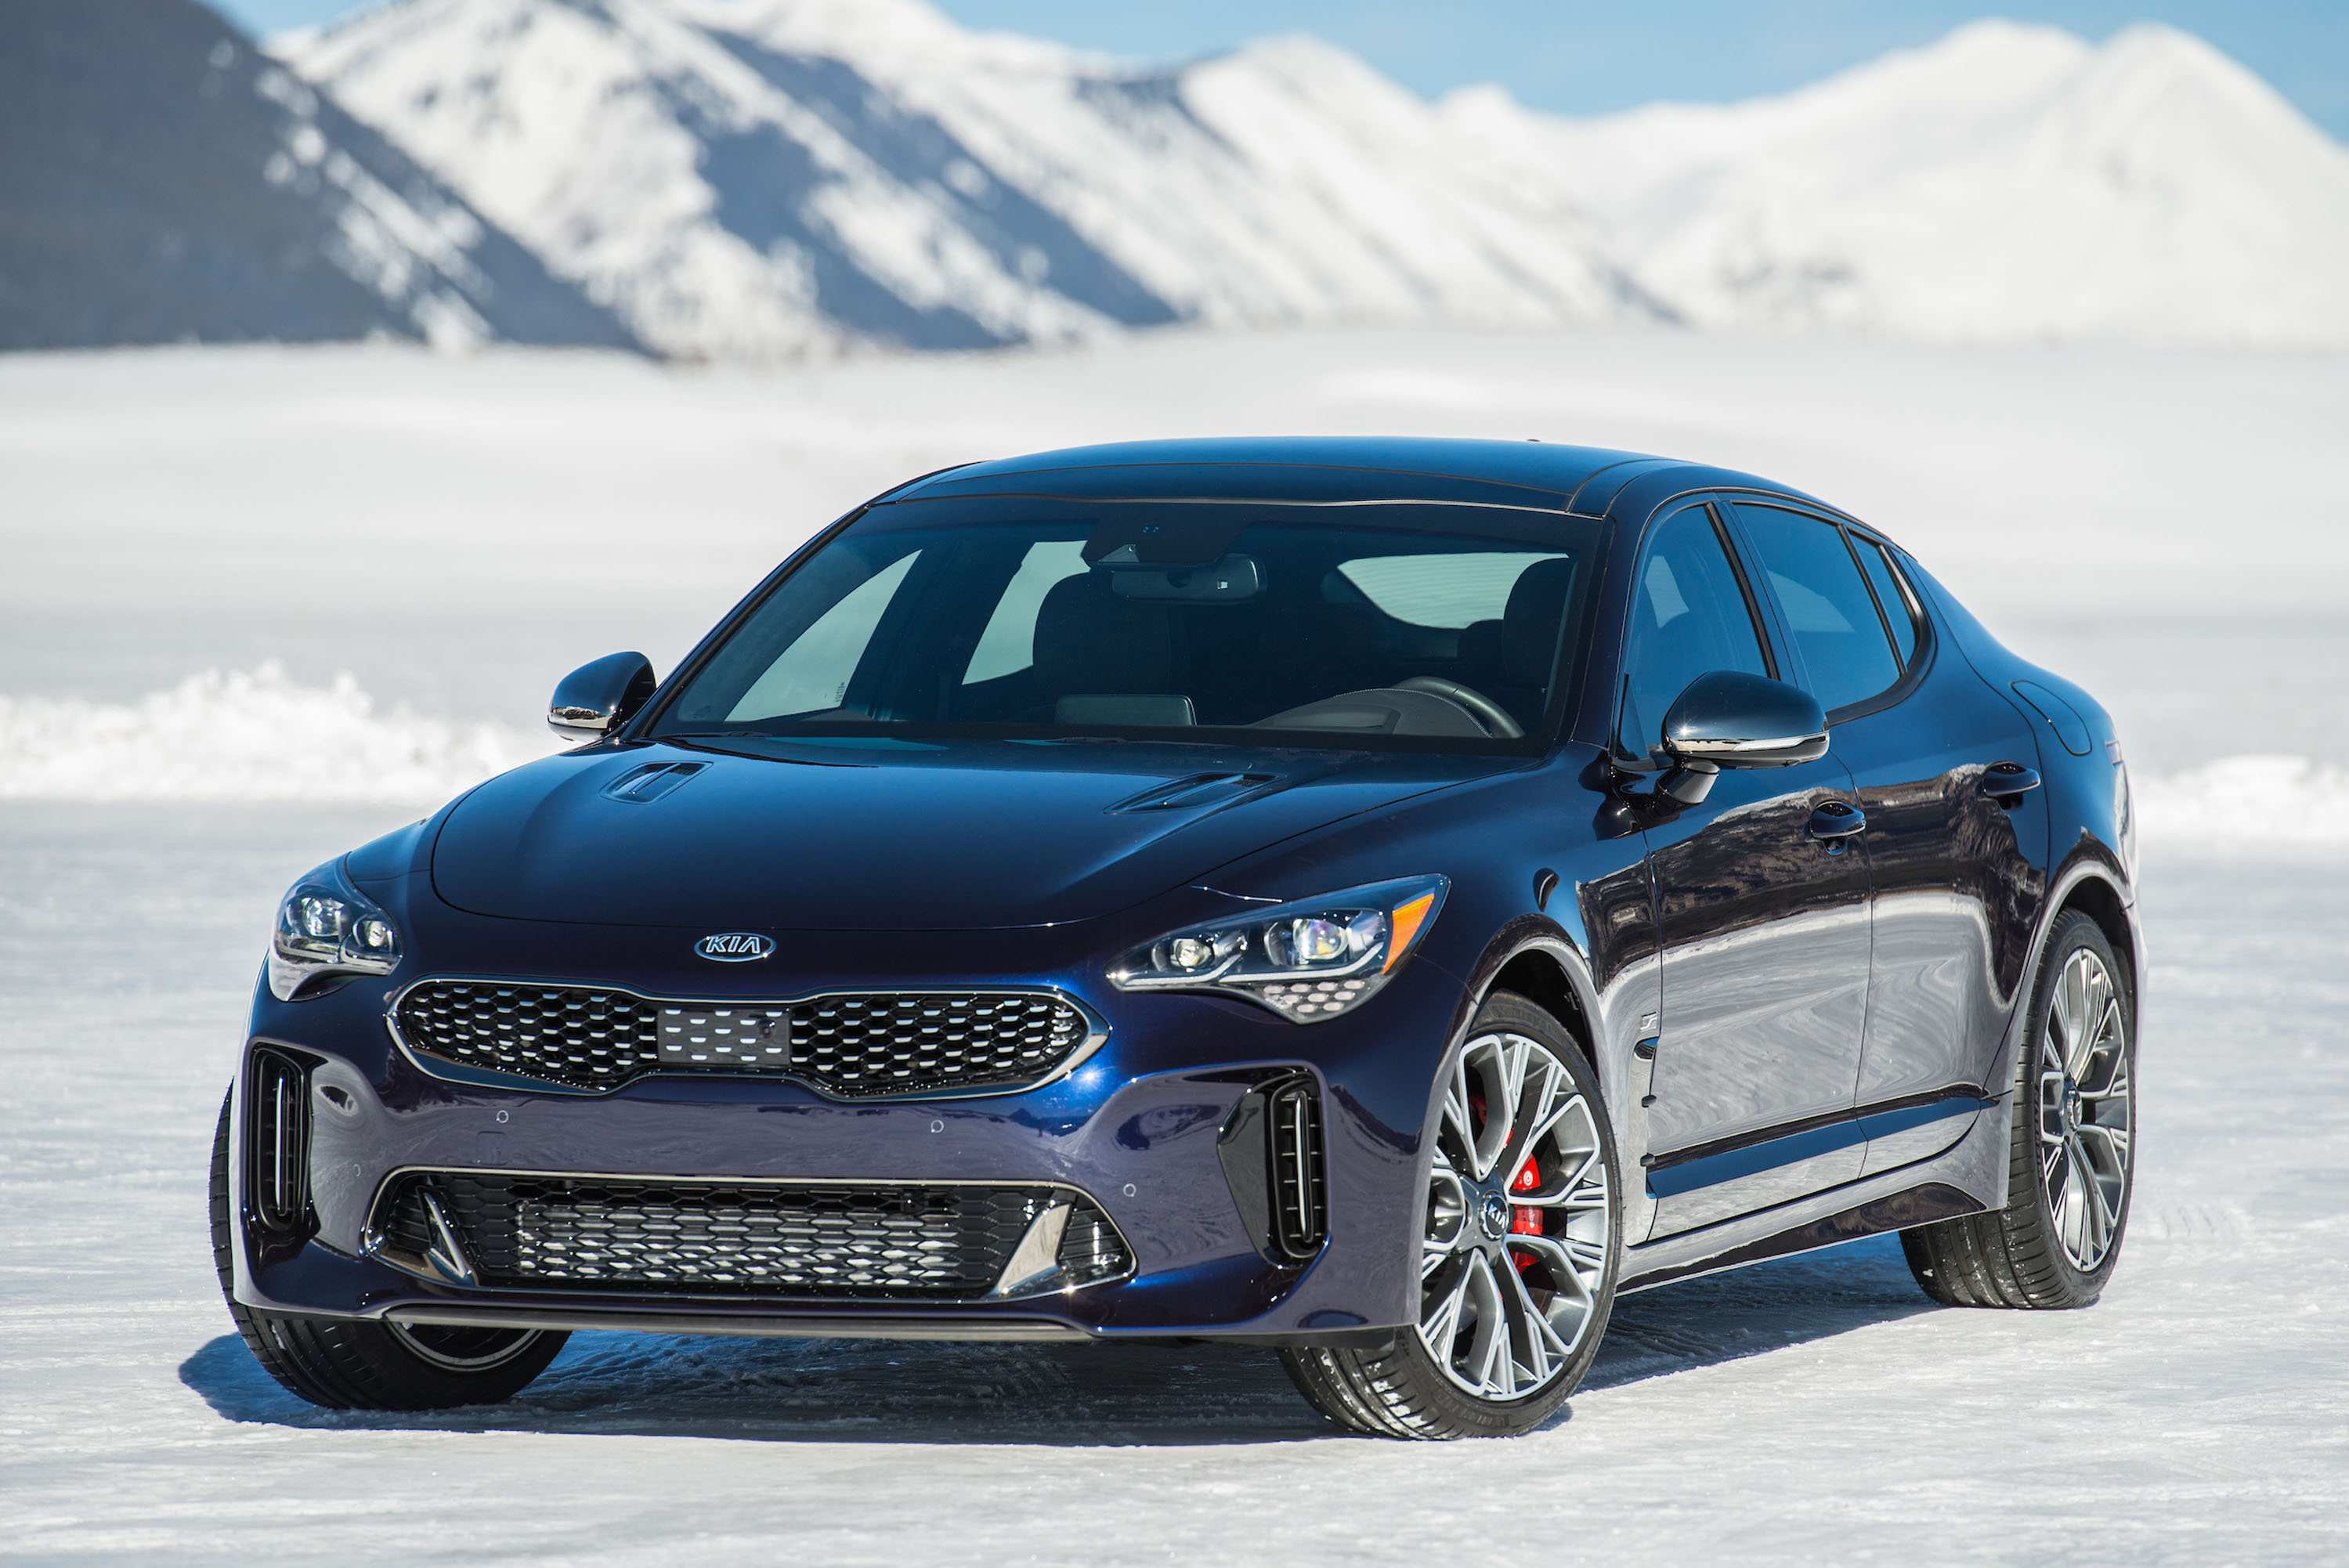 82 Great 2020 Kia Stinger Gt2 Exterior and Interior by 2020 Kia Stinger Gt2